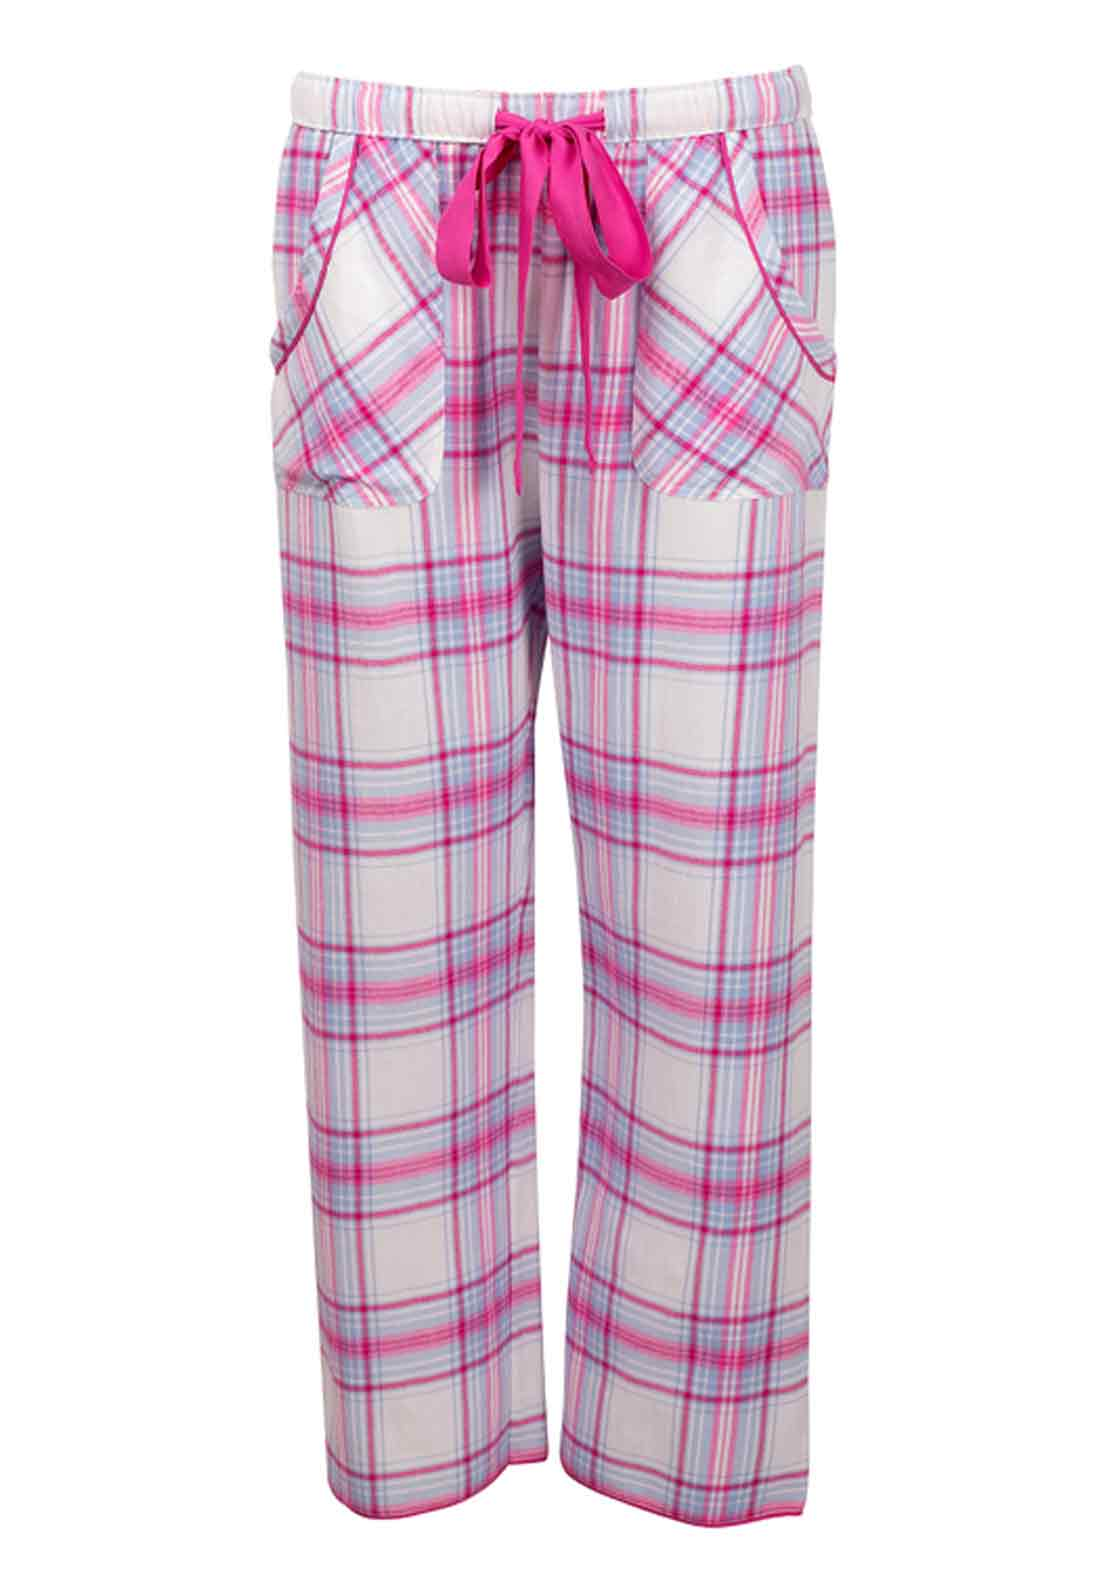 Cyberjammies Floral Fun Checked Brushed Cotton Pyjama Bottoms, Pink and Blue